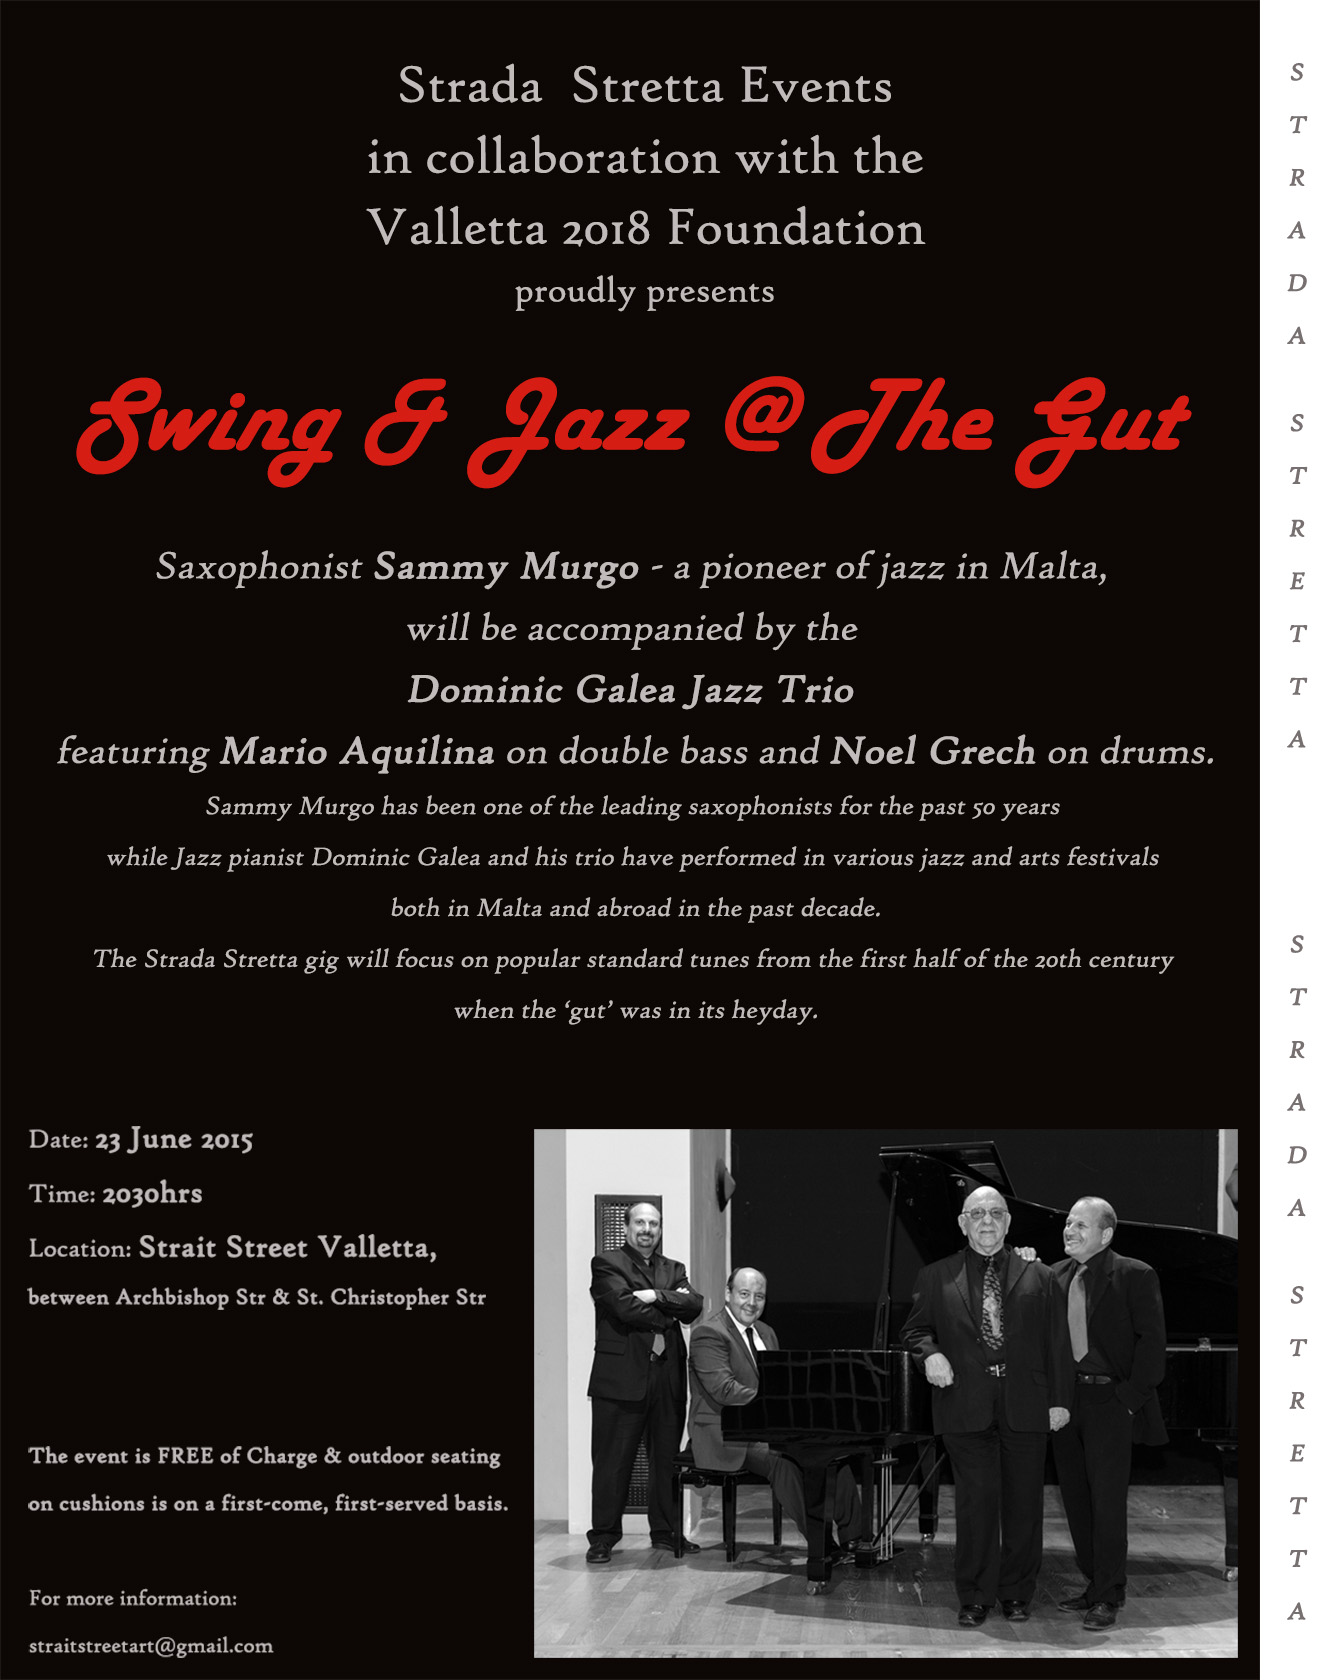 Swing and Jazz at the Gut2